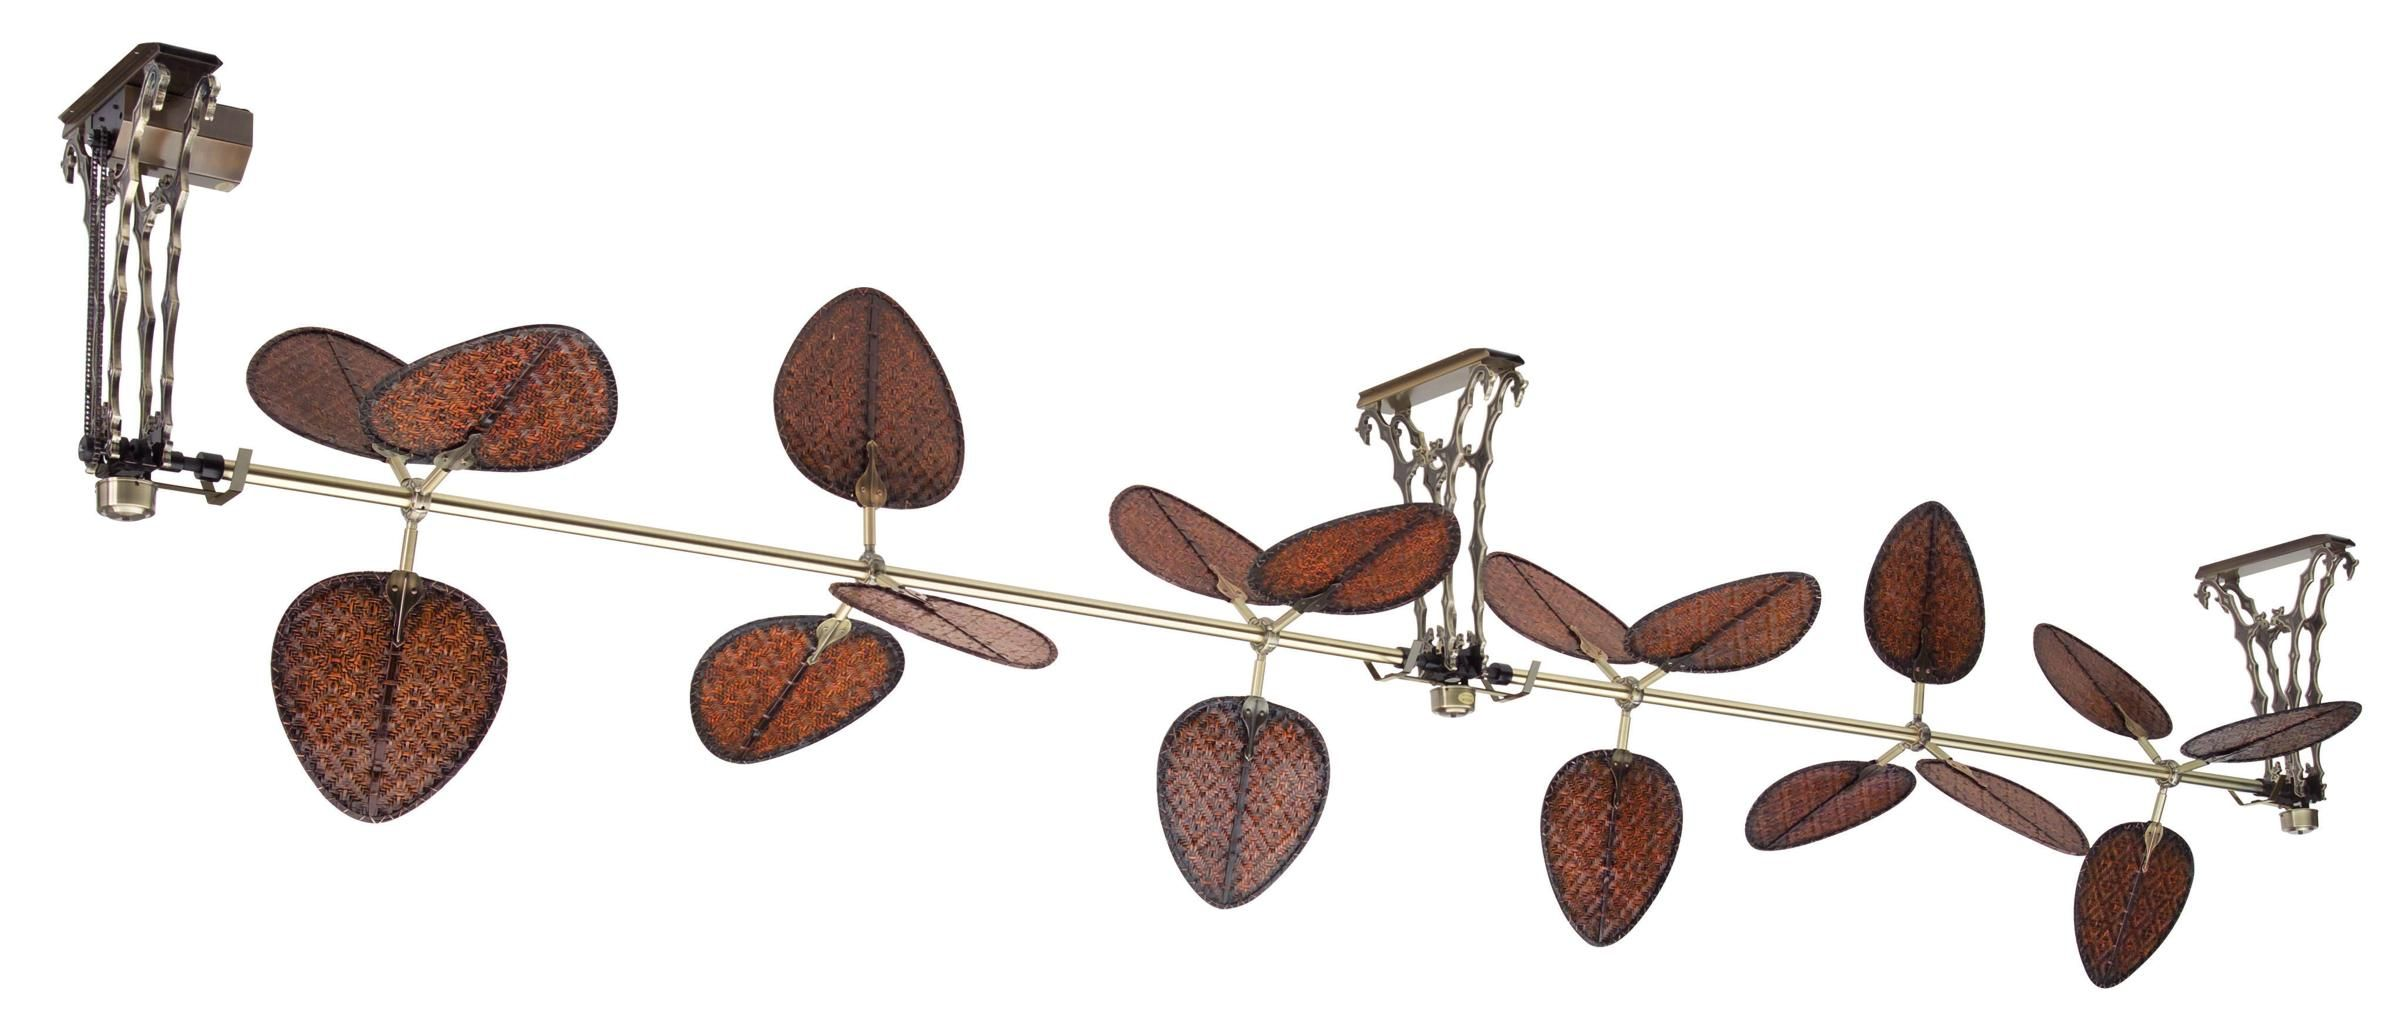 Another Fanimation ceiling fan the Palmetto can run as long as 45